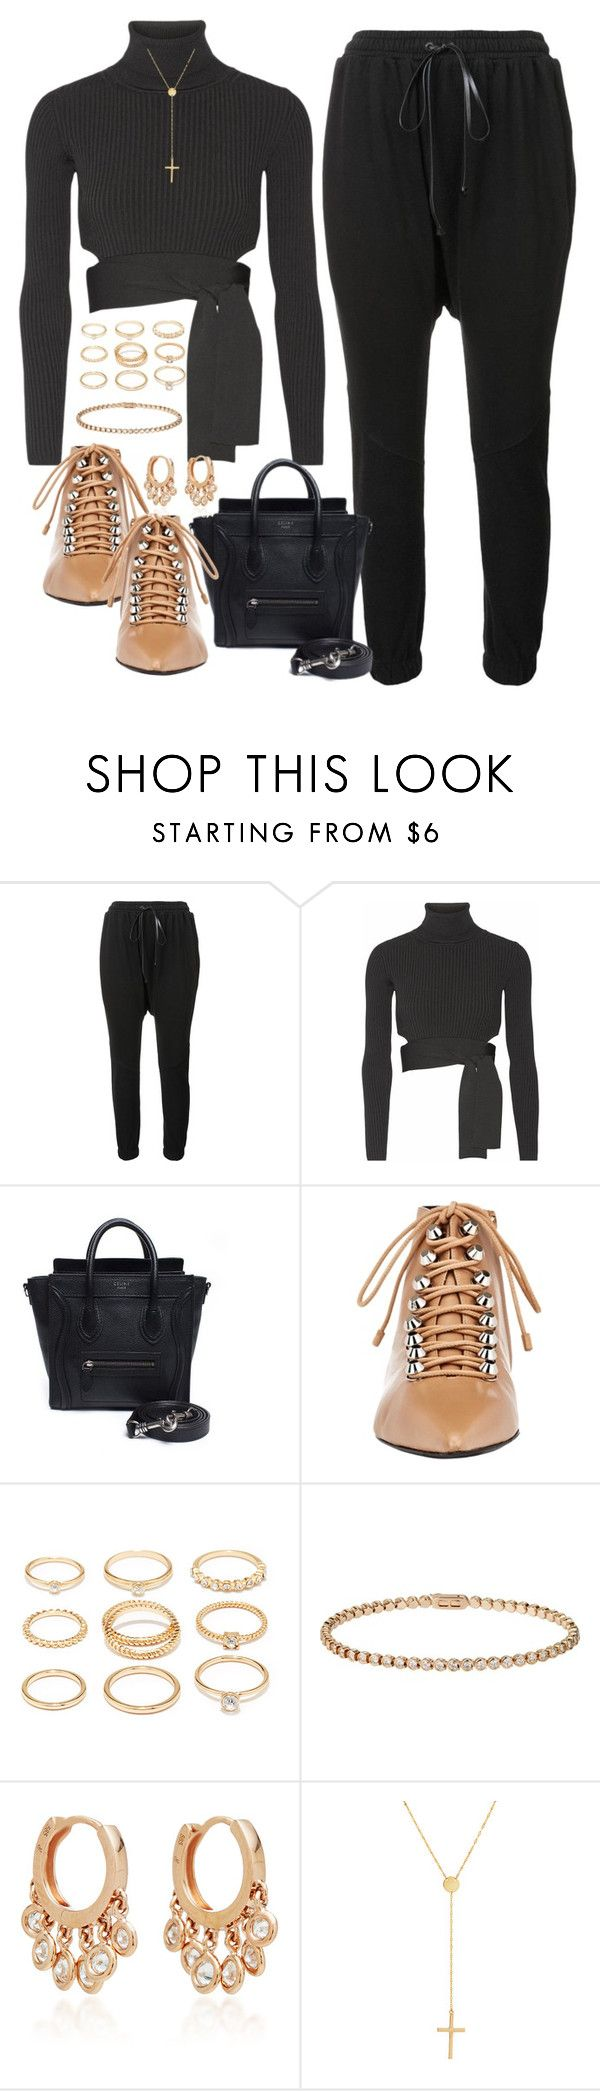 """I would like"" by liberhty ❤ liked on Polyvore featuring daniel patrick, Cushnie Et Ochs, CÉLINE, Balenciaga, Forever 21, Cartier, Jacquie Aiche and Lana Jewelry"